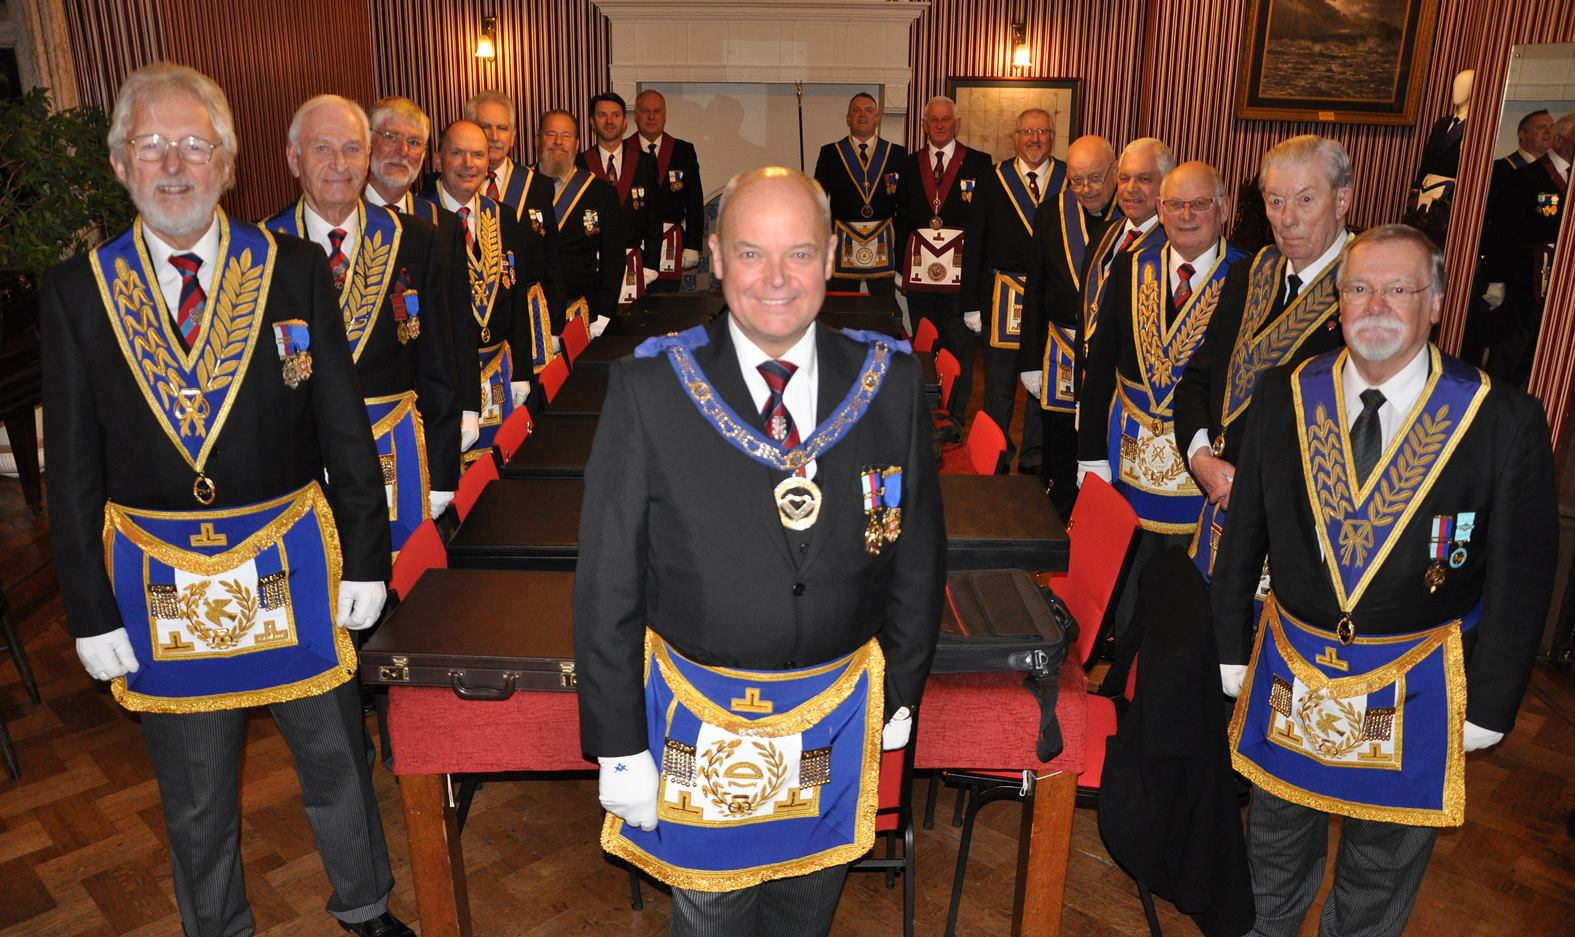 South West Area of Hampshire Freemasons